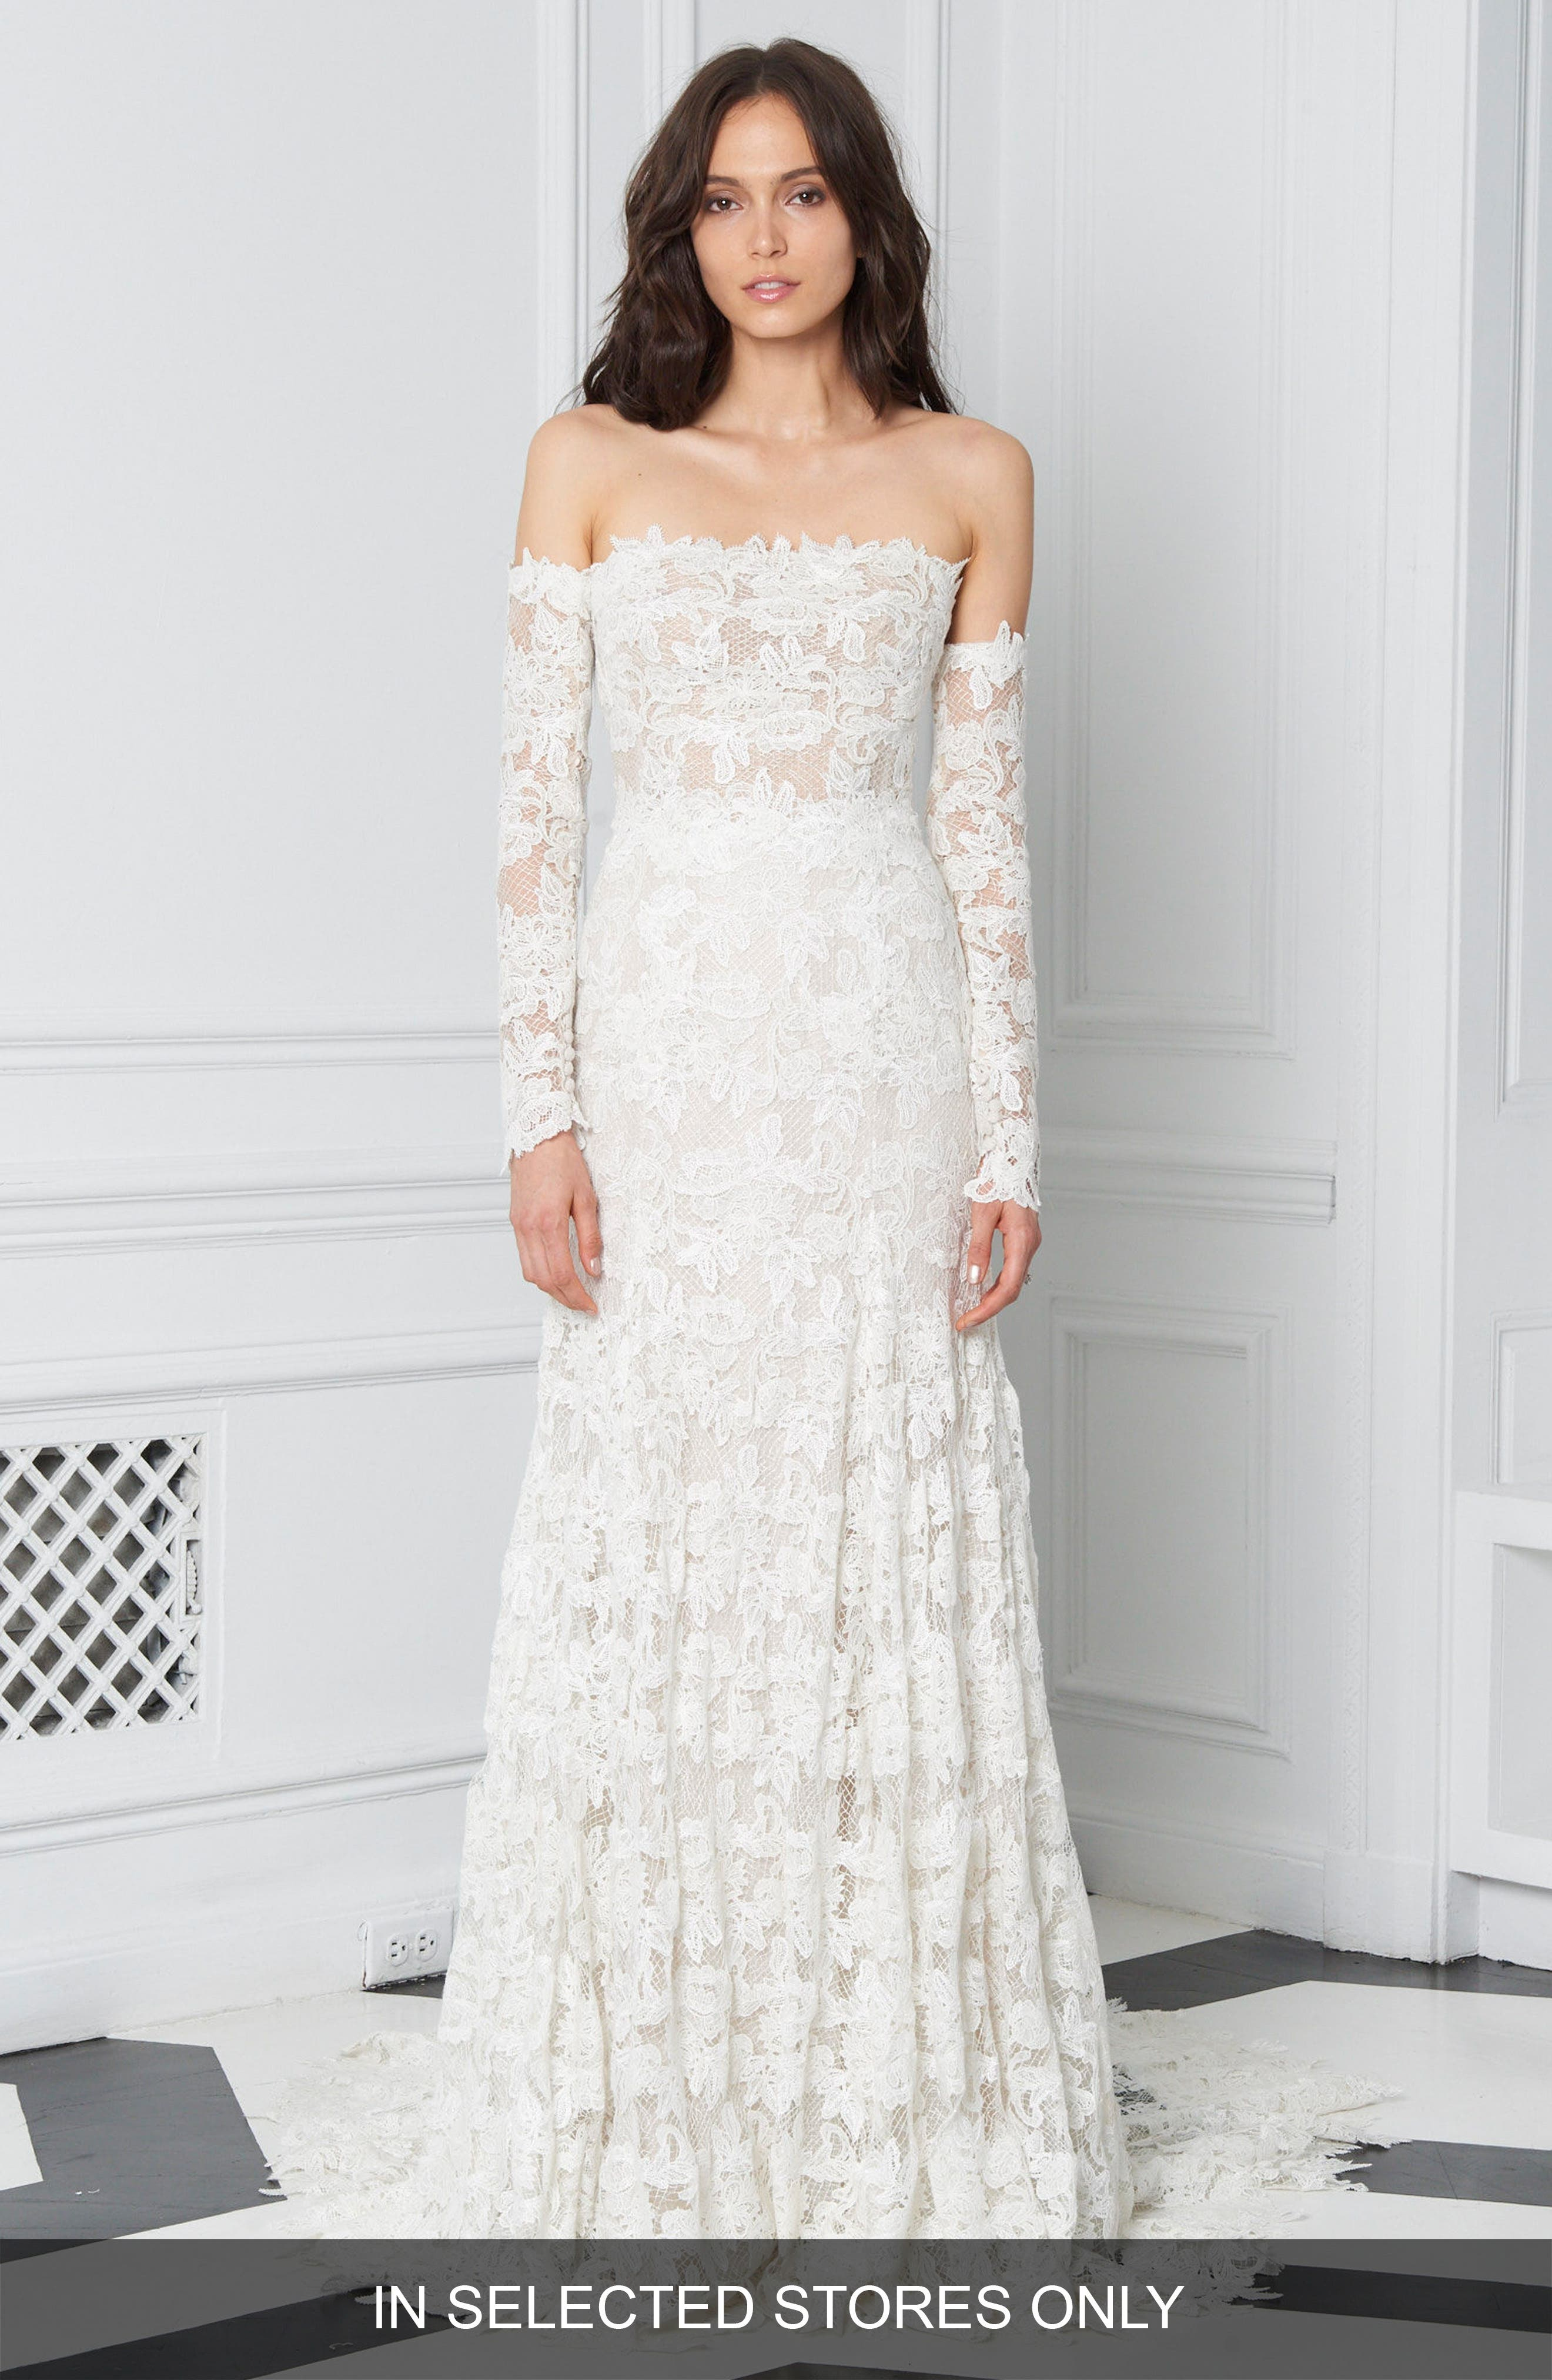 Scalloped Lace Off the Shoulder Gown,                             Main thumbnail 1, color,                             Silk White/ Latte